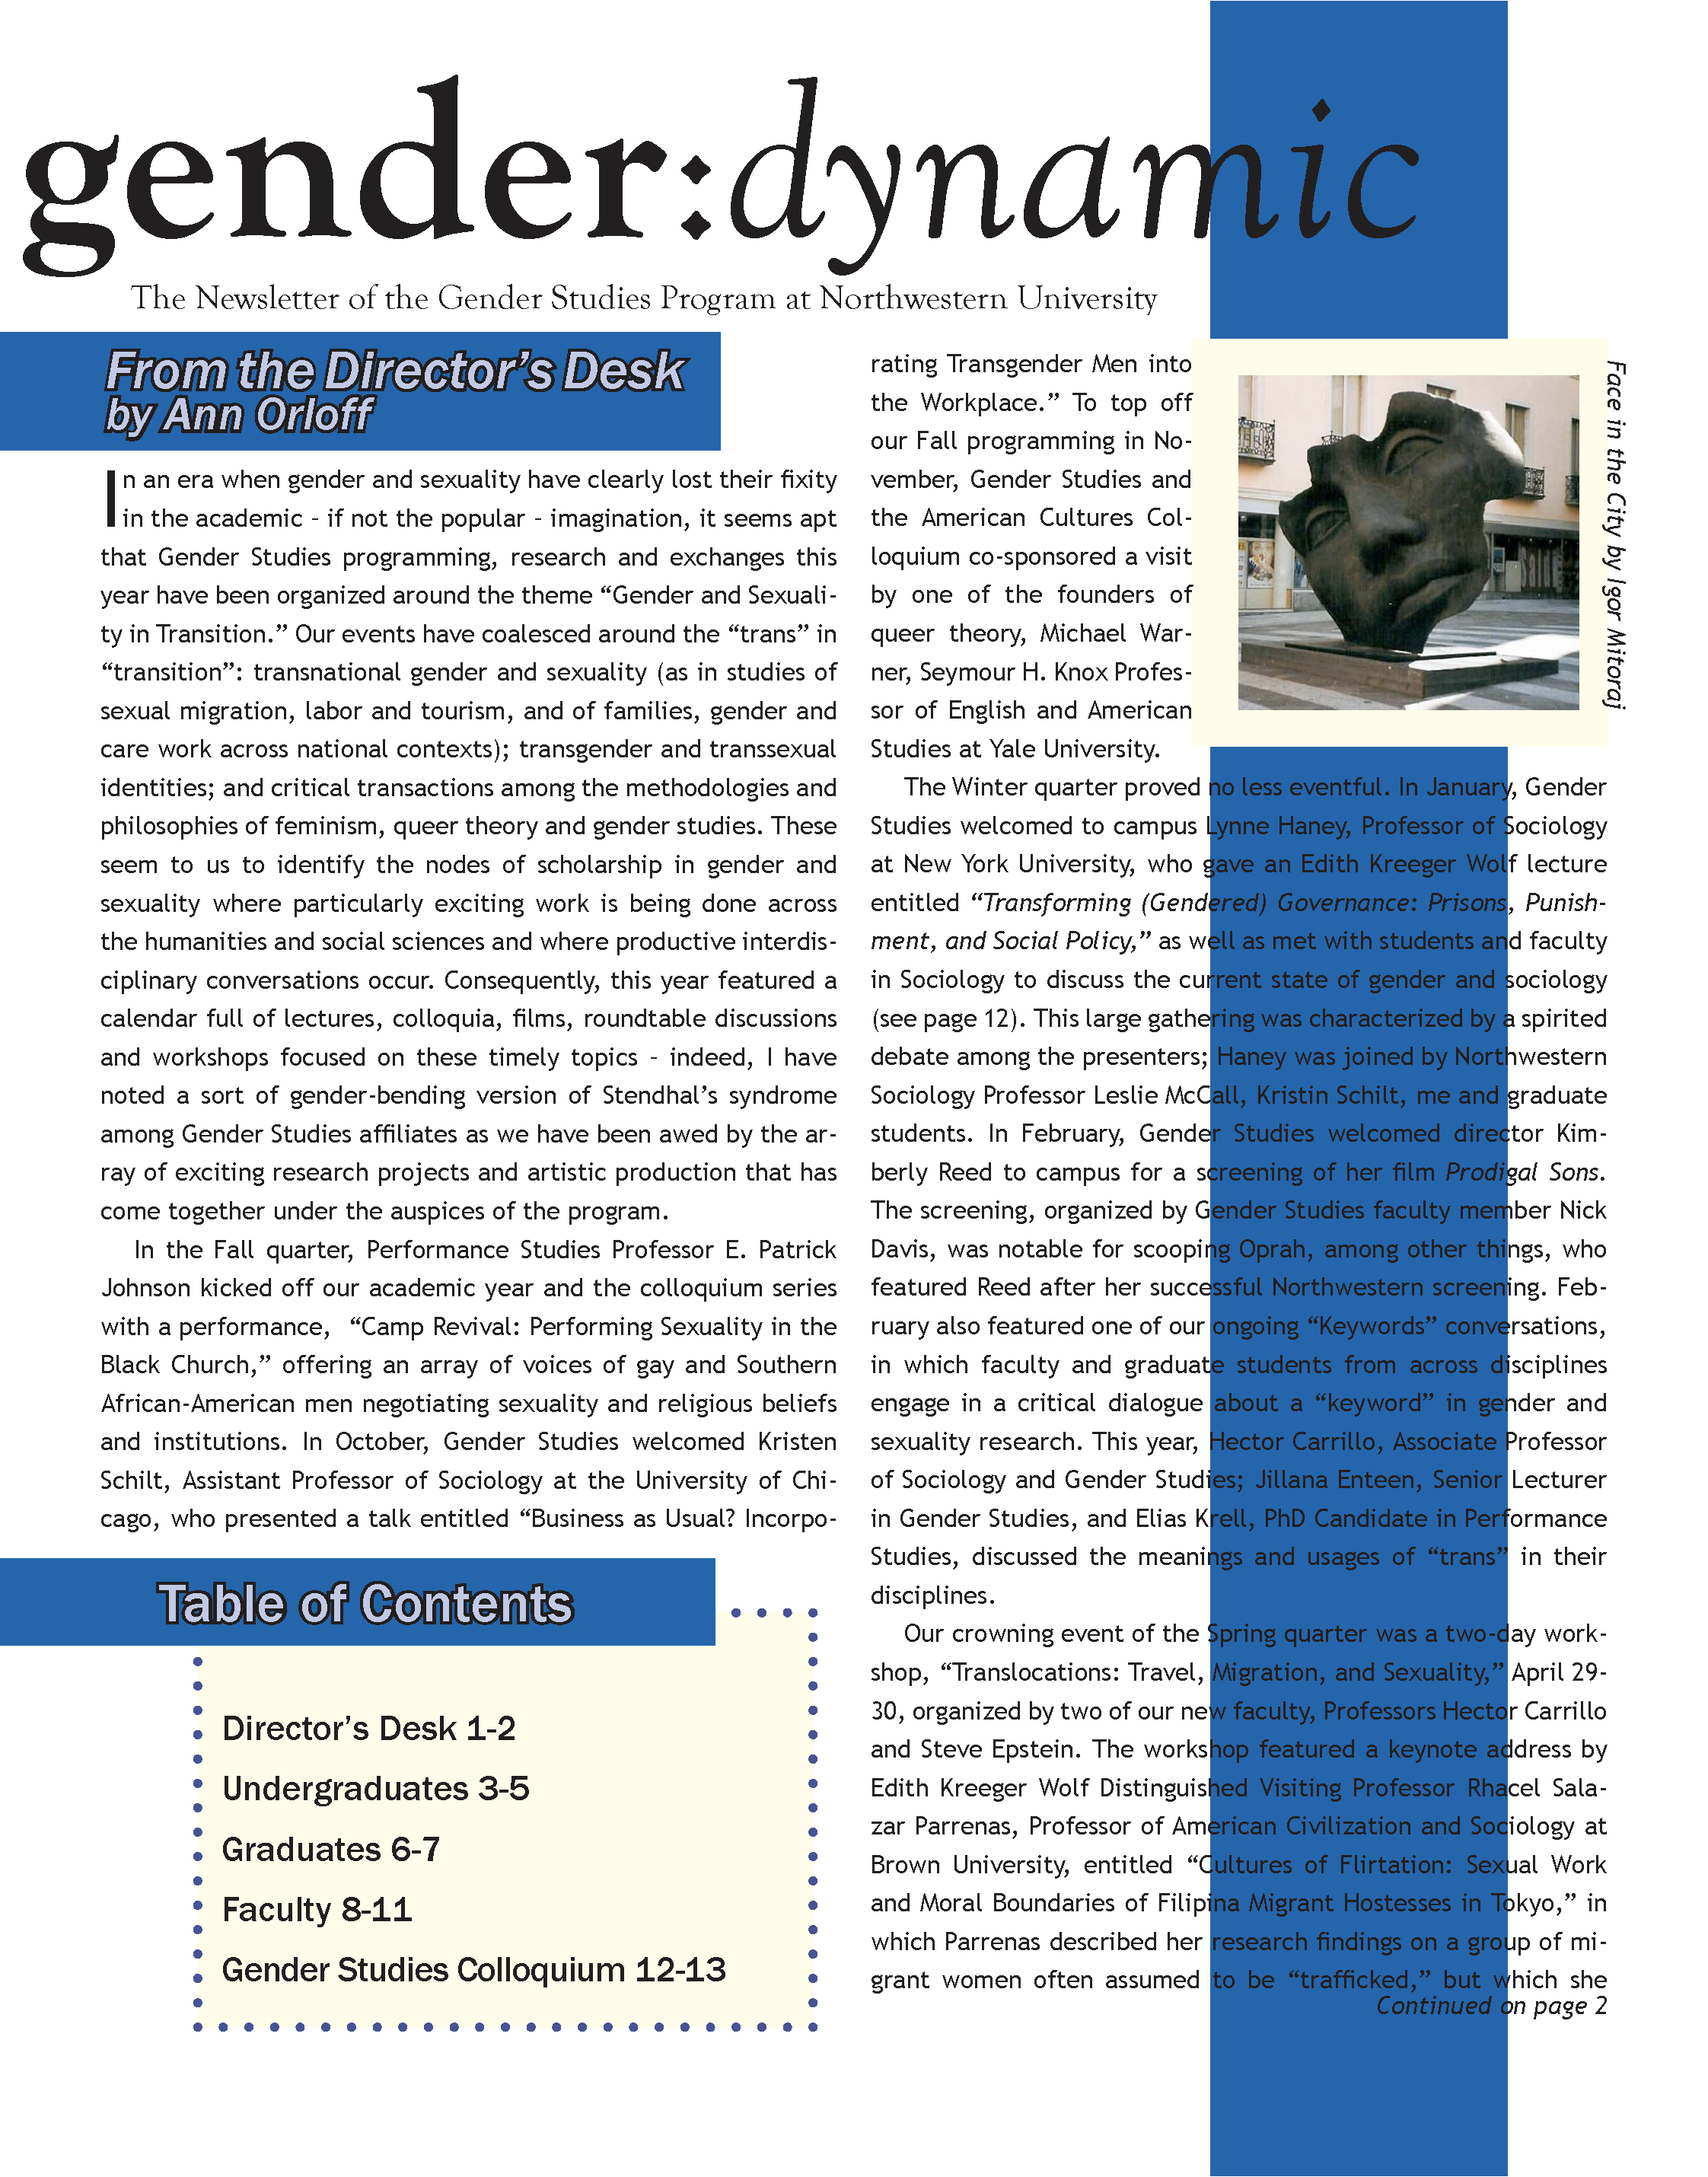 2010-newsletter-cover-page.png